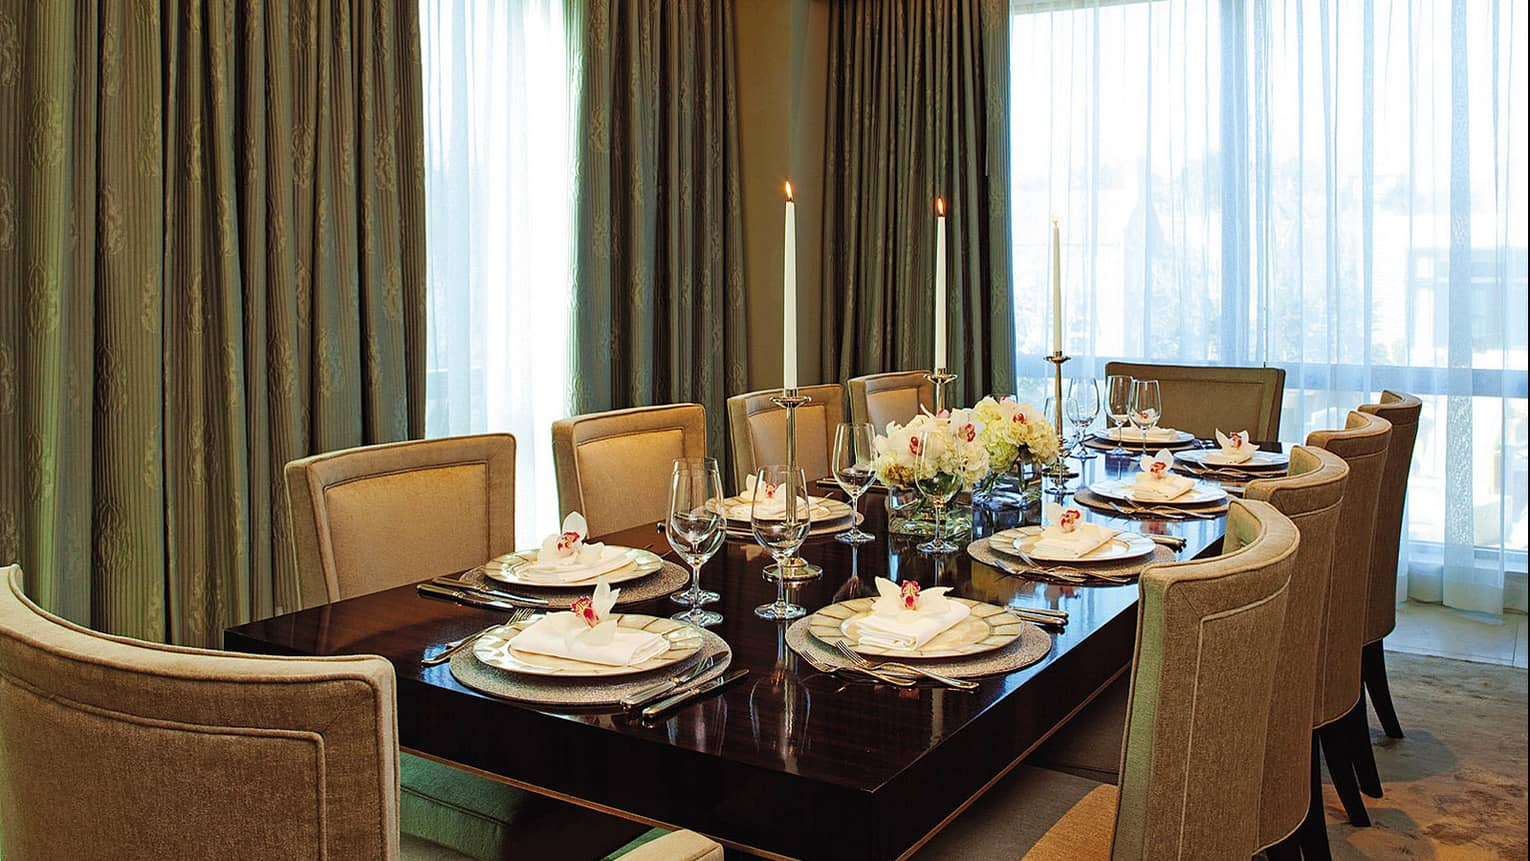 Royal Suite large private dining table elegantly set with fine dinnerware, tall single white candles, fresh flowers, in front of corner windows